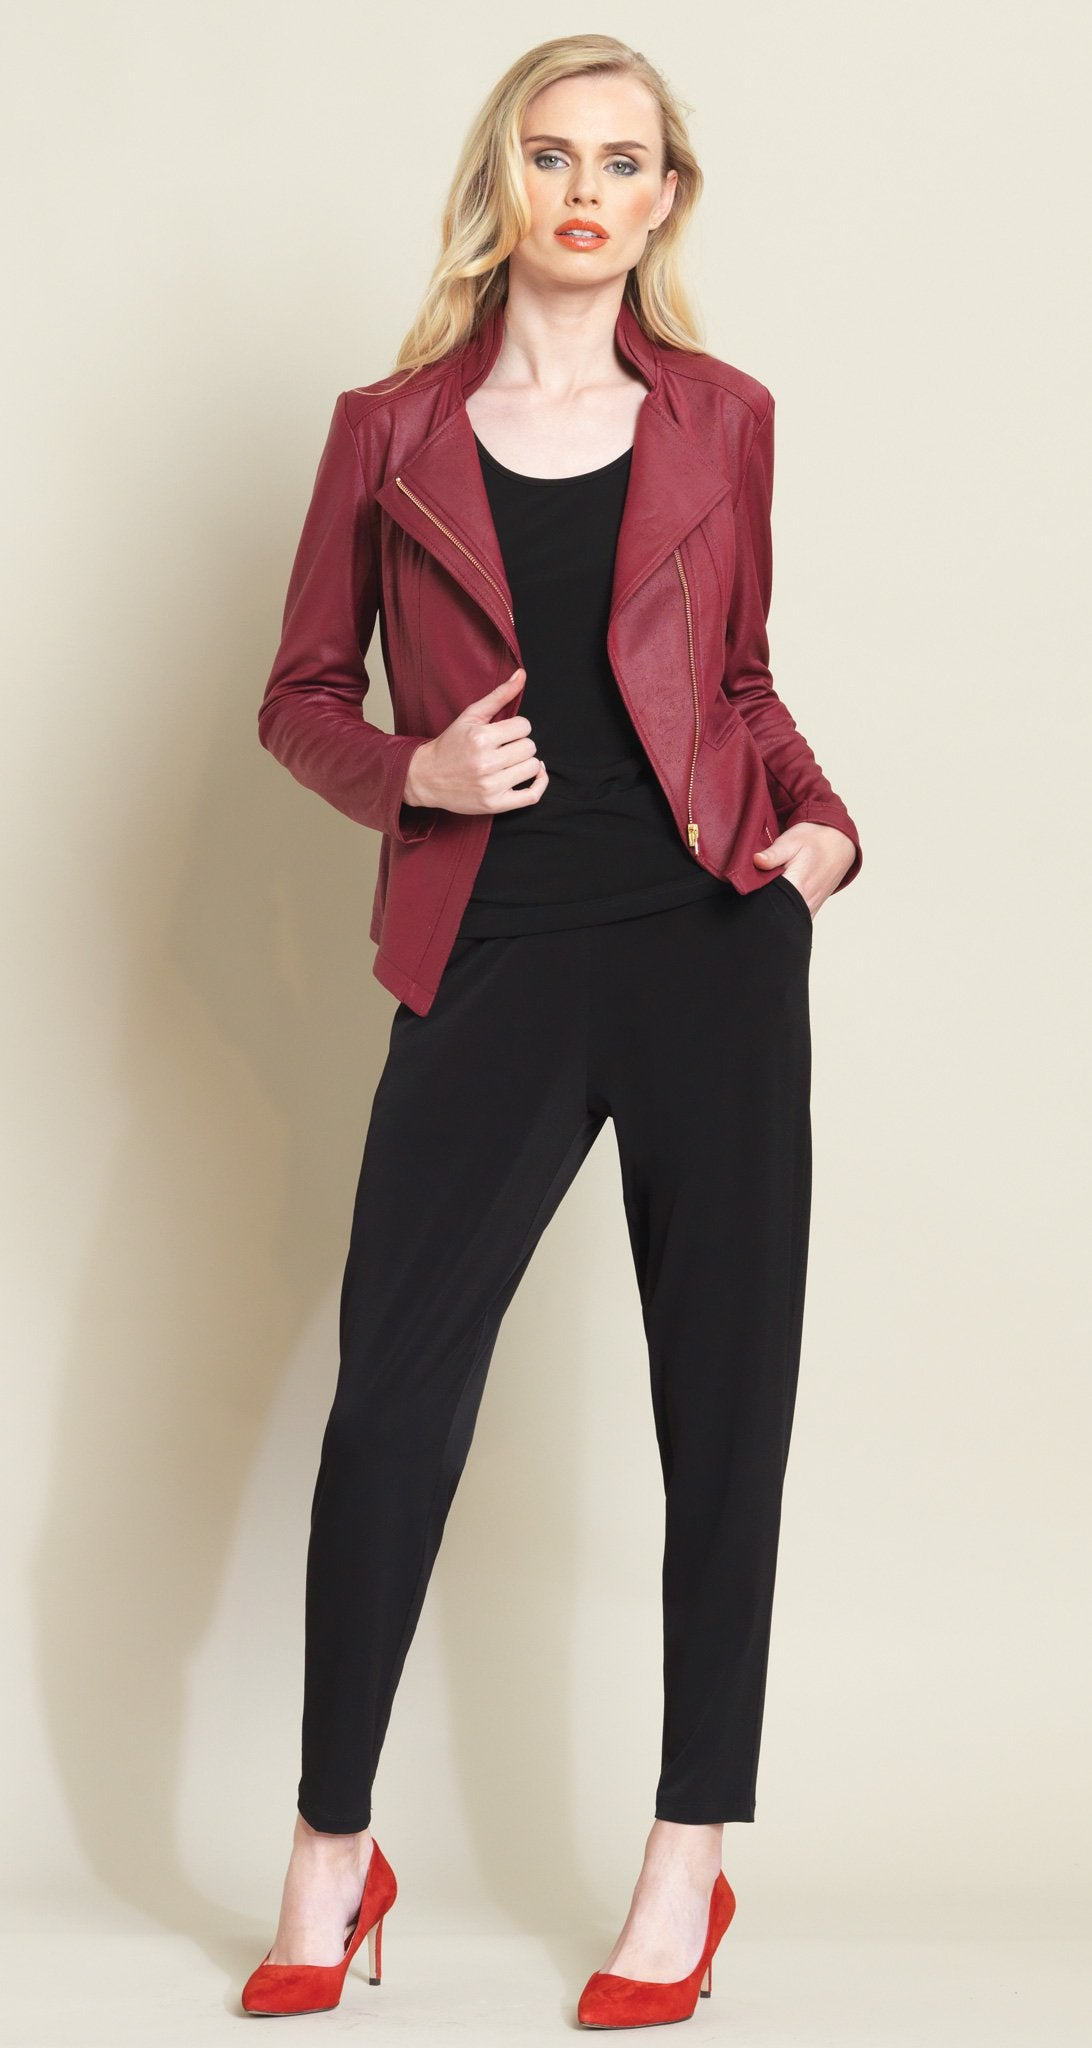 Liquid Leather Zip Jacket - Merlot - As Seen on Today Show! - Clara Sunwoo